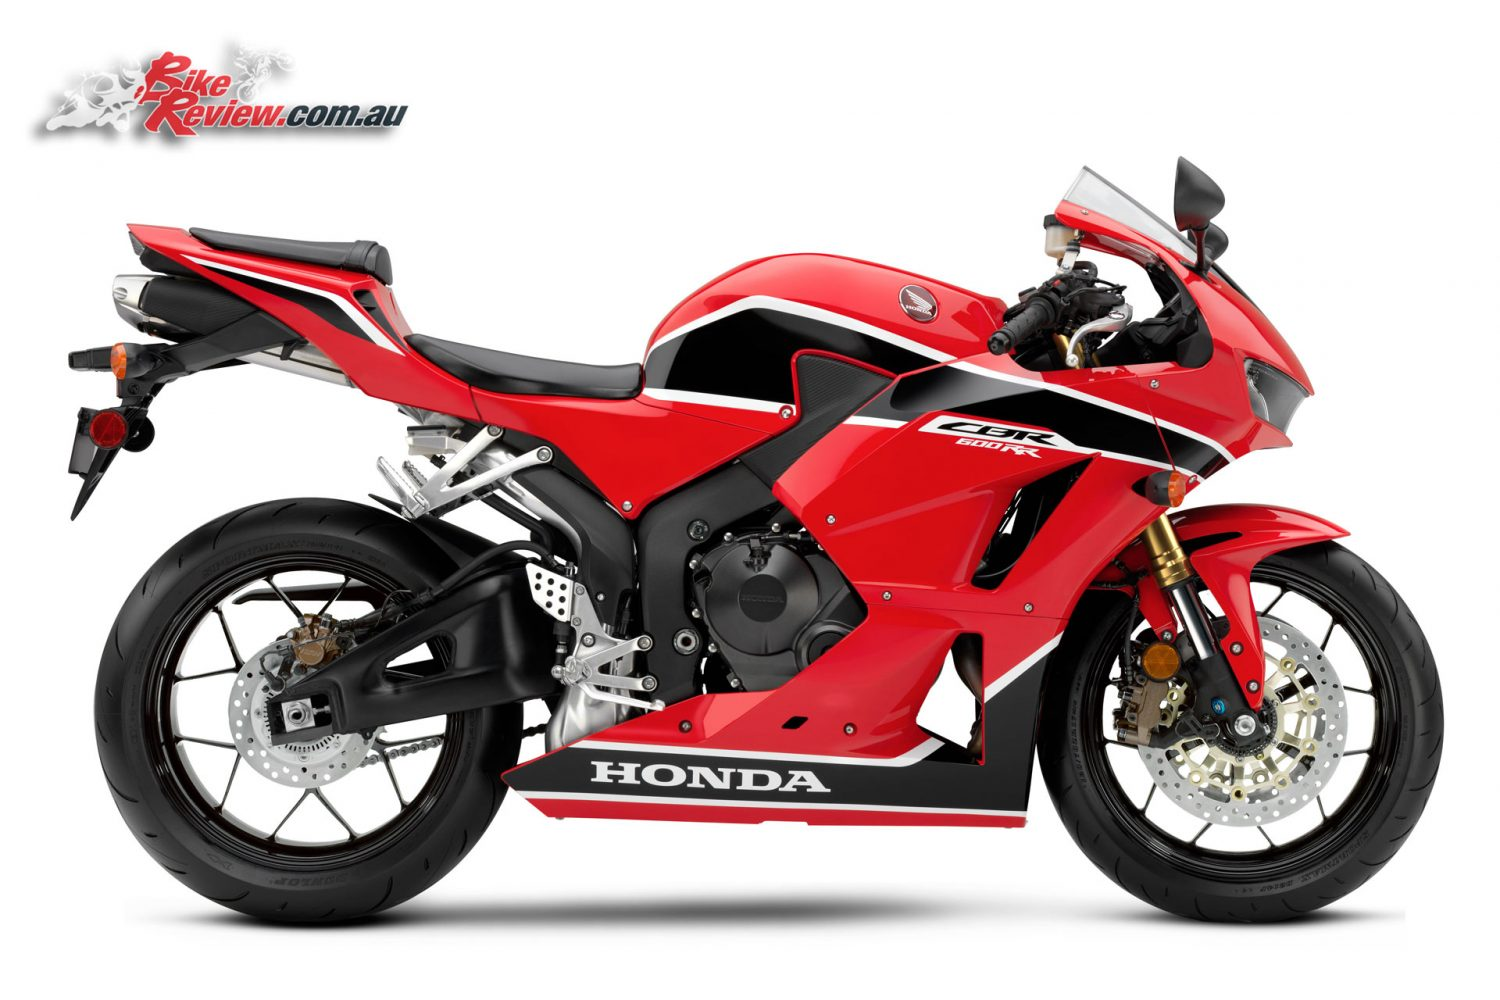 Honda Cbr1000rr Review >> Honda reveal 2017 CBR600RR - Bike Review